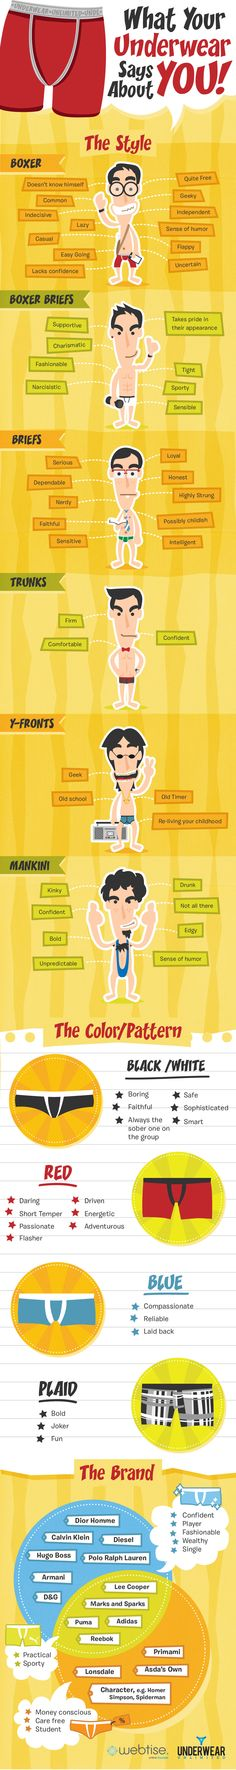 What do Your Undies say about YOU?! | Dapper Dude Designer Clothing | Mens Fashion Blog